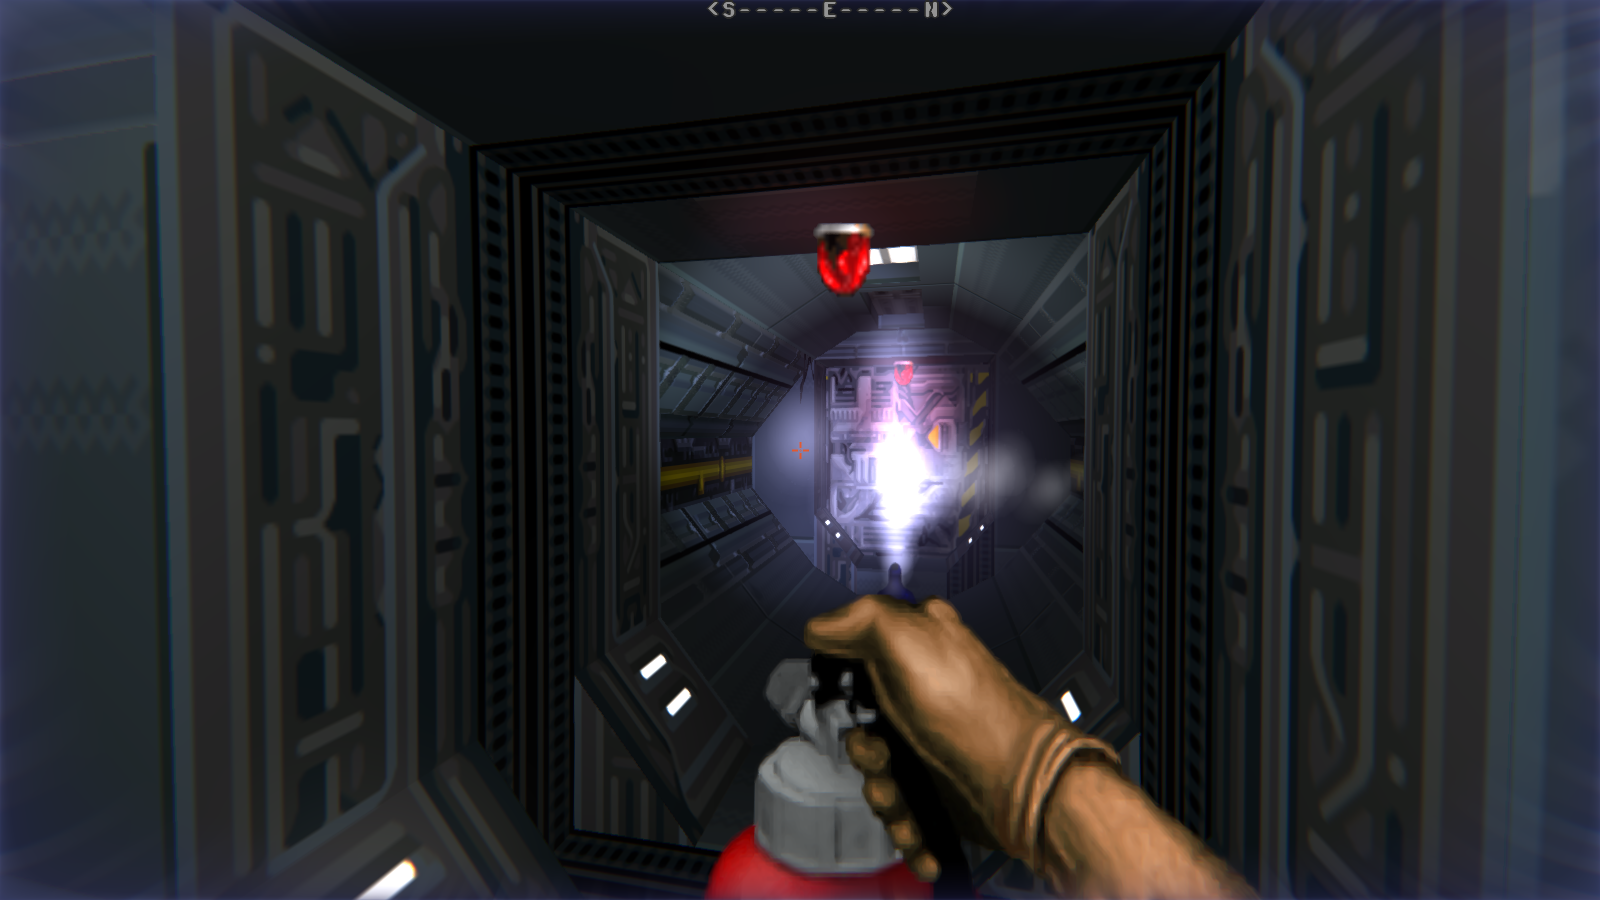 DRRP Doom RPG Remake Project SEC1 Sector 1 Gateway Steam Fire Extinguisher Flashlight Screenshot